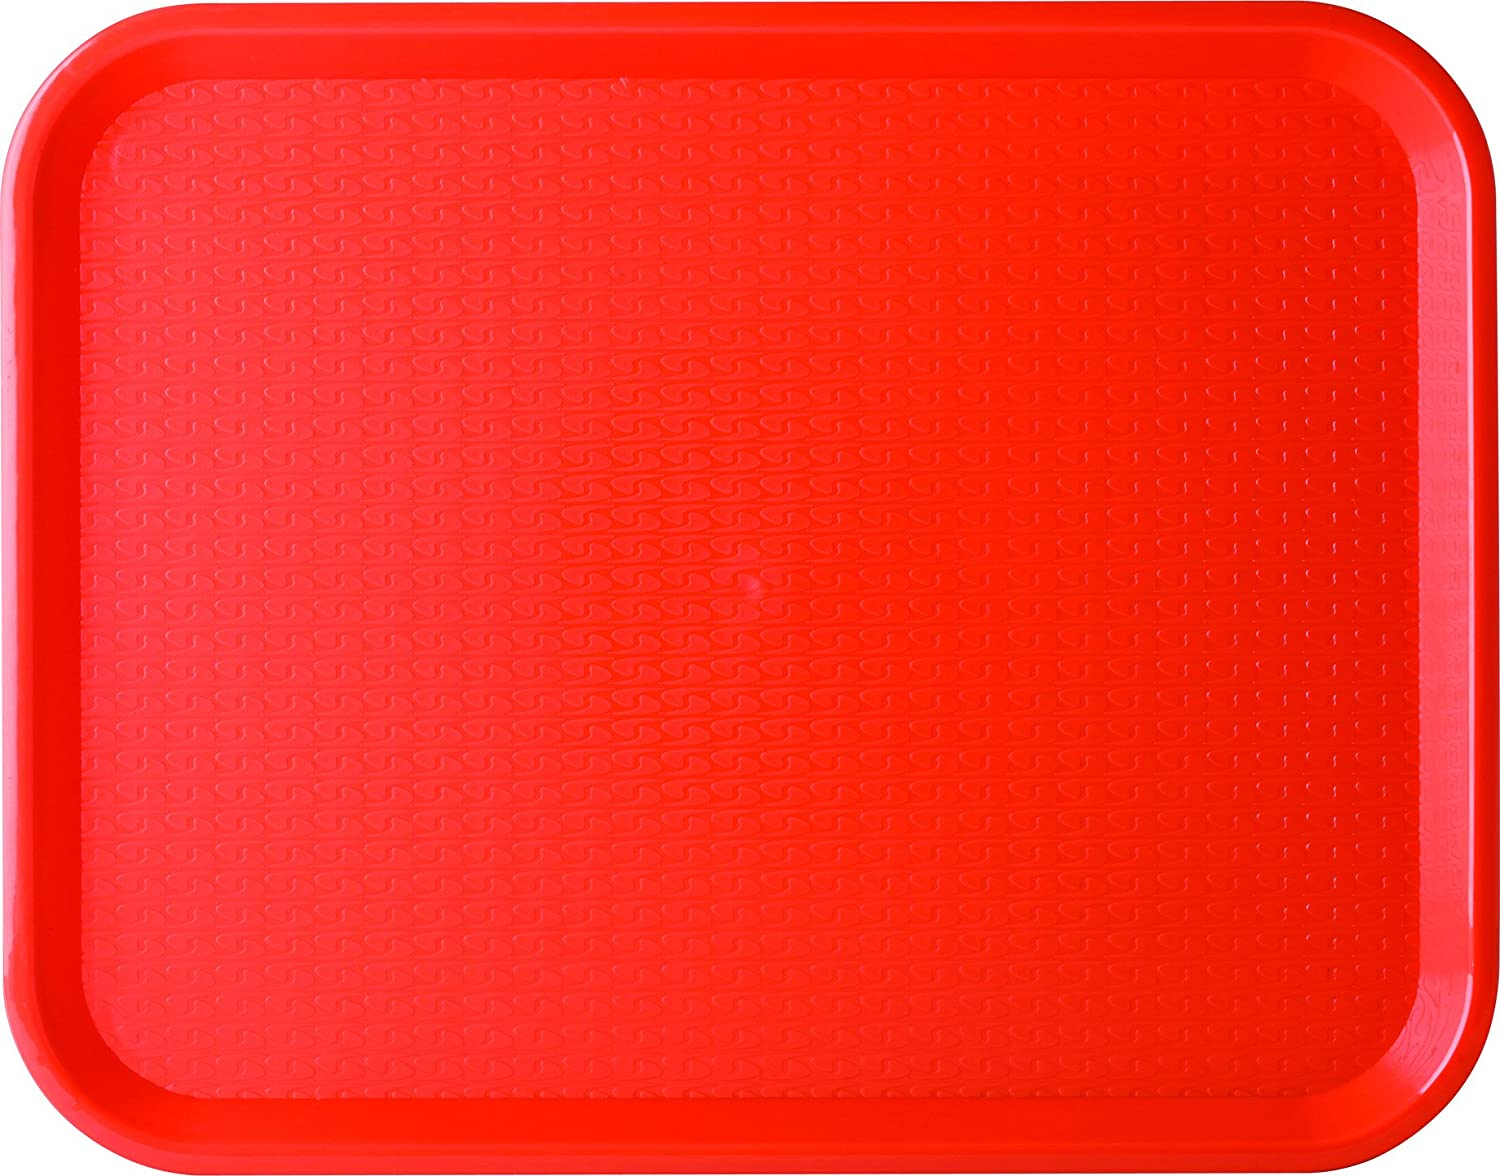 Carlisle CT141805 Cafe 70% OFF Outlet Cheap mail order sales Standard Plastic Food Fast Tray Cafeteria